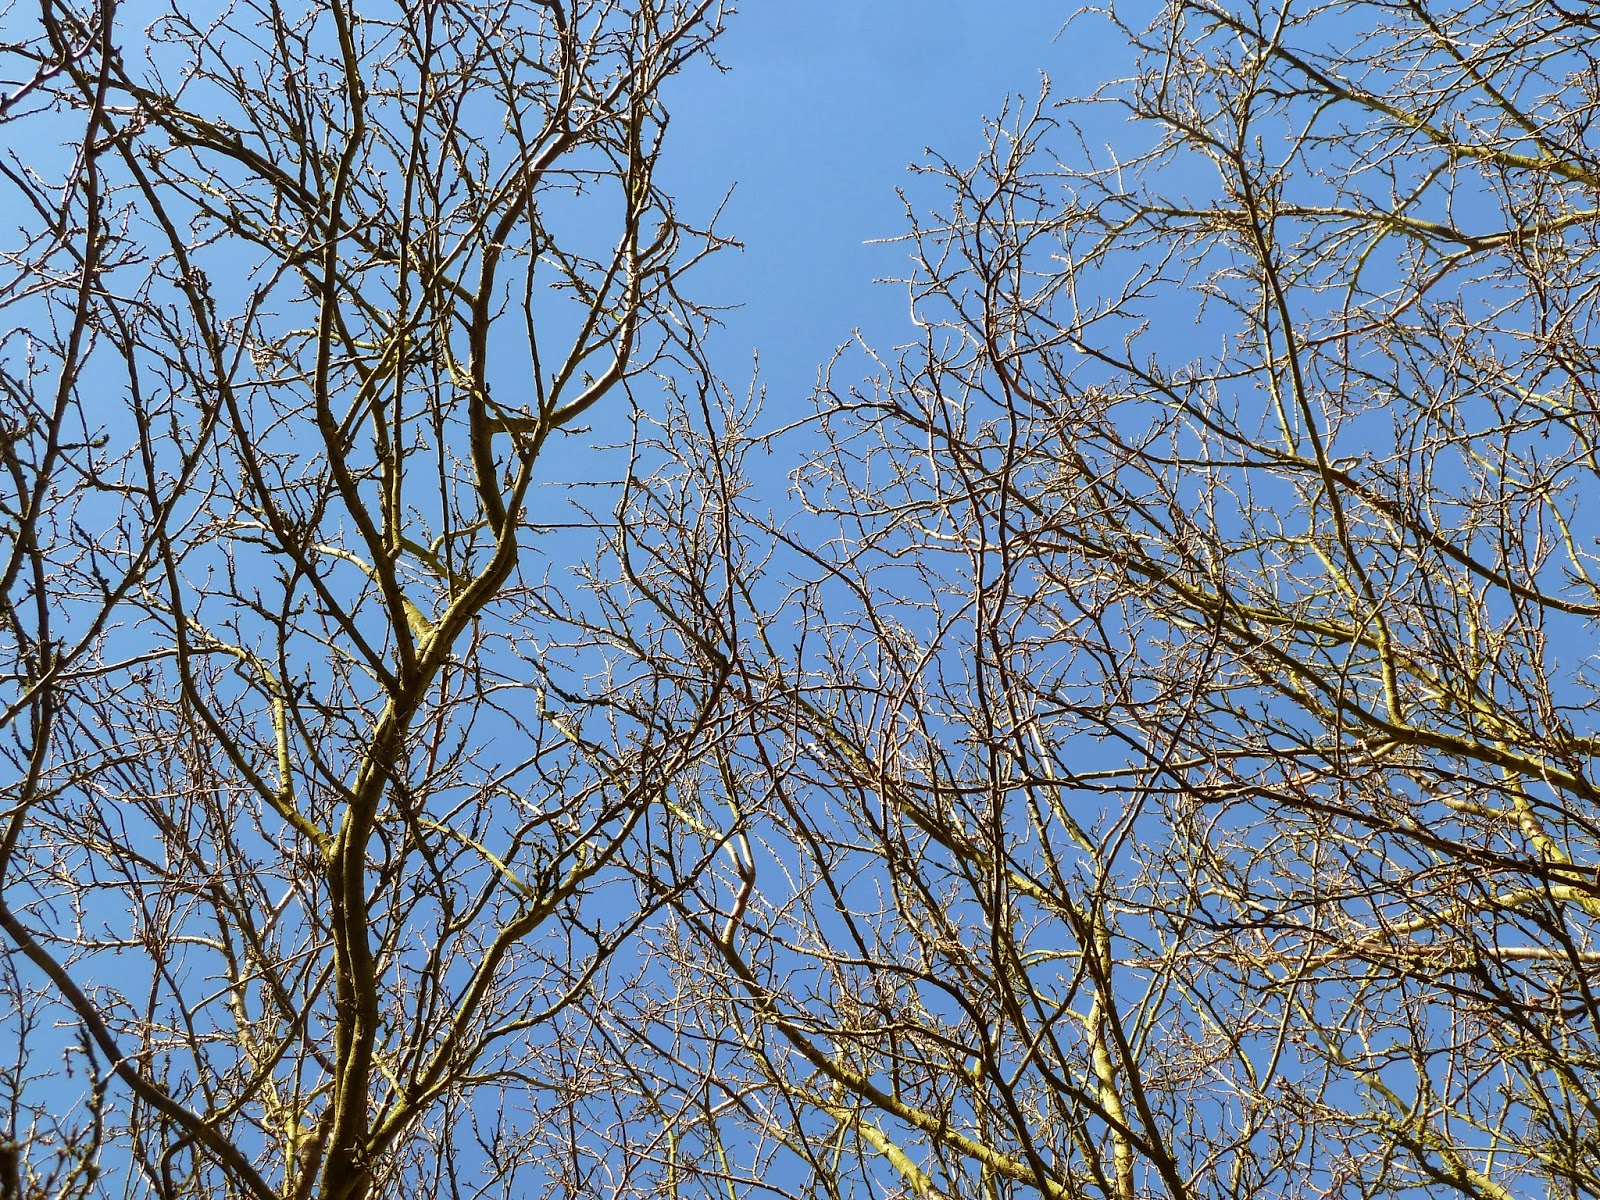 Plum tree branches against BLUE sky